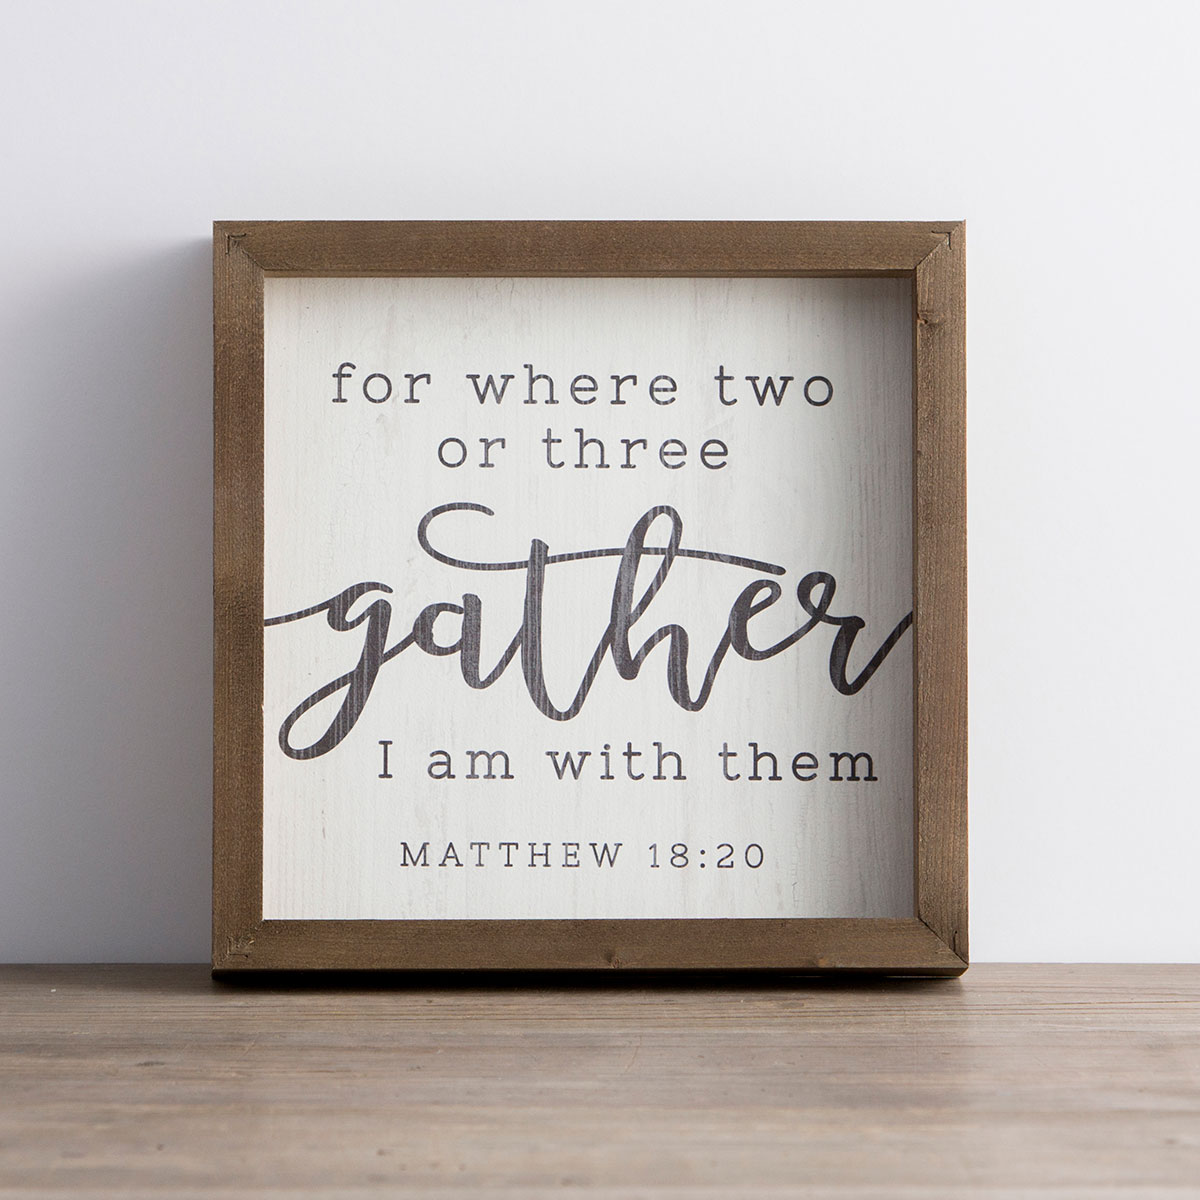 For Where Two or Three Gather - Framed Wall Board